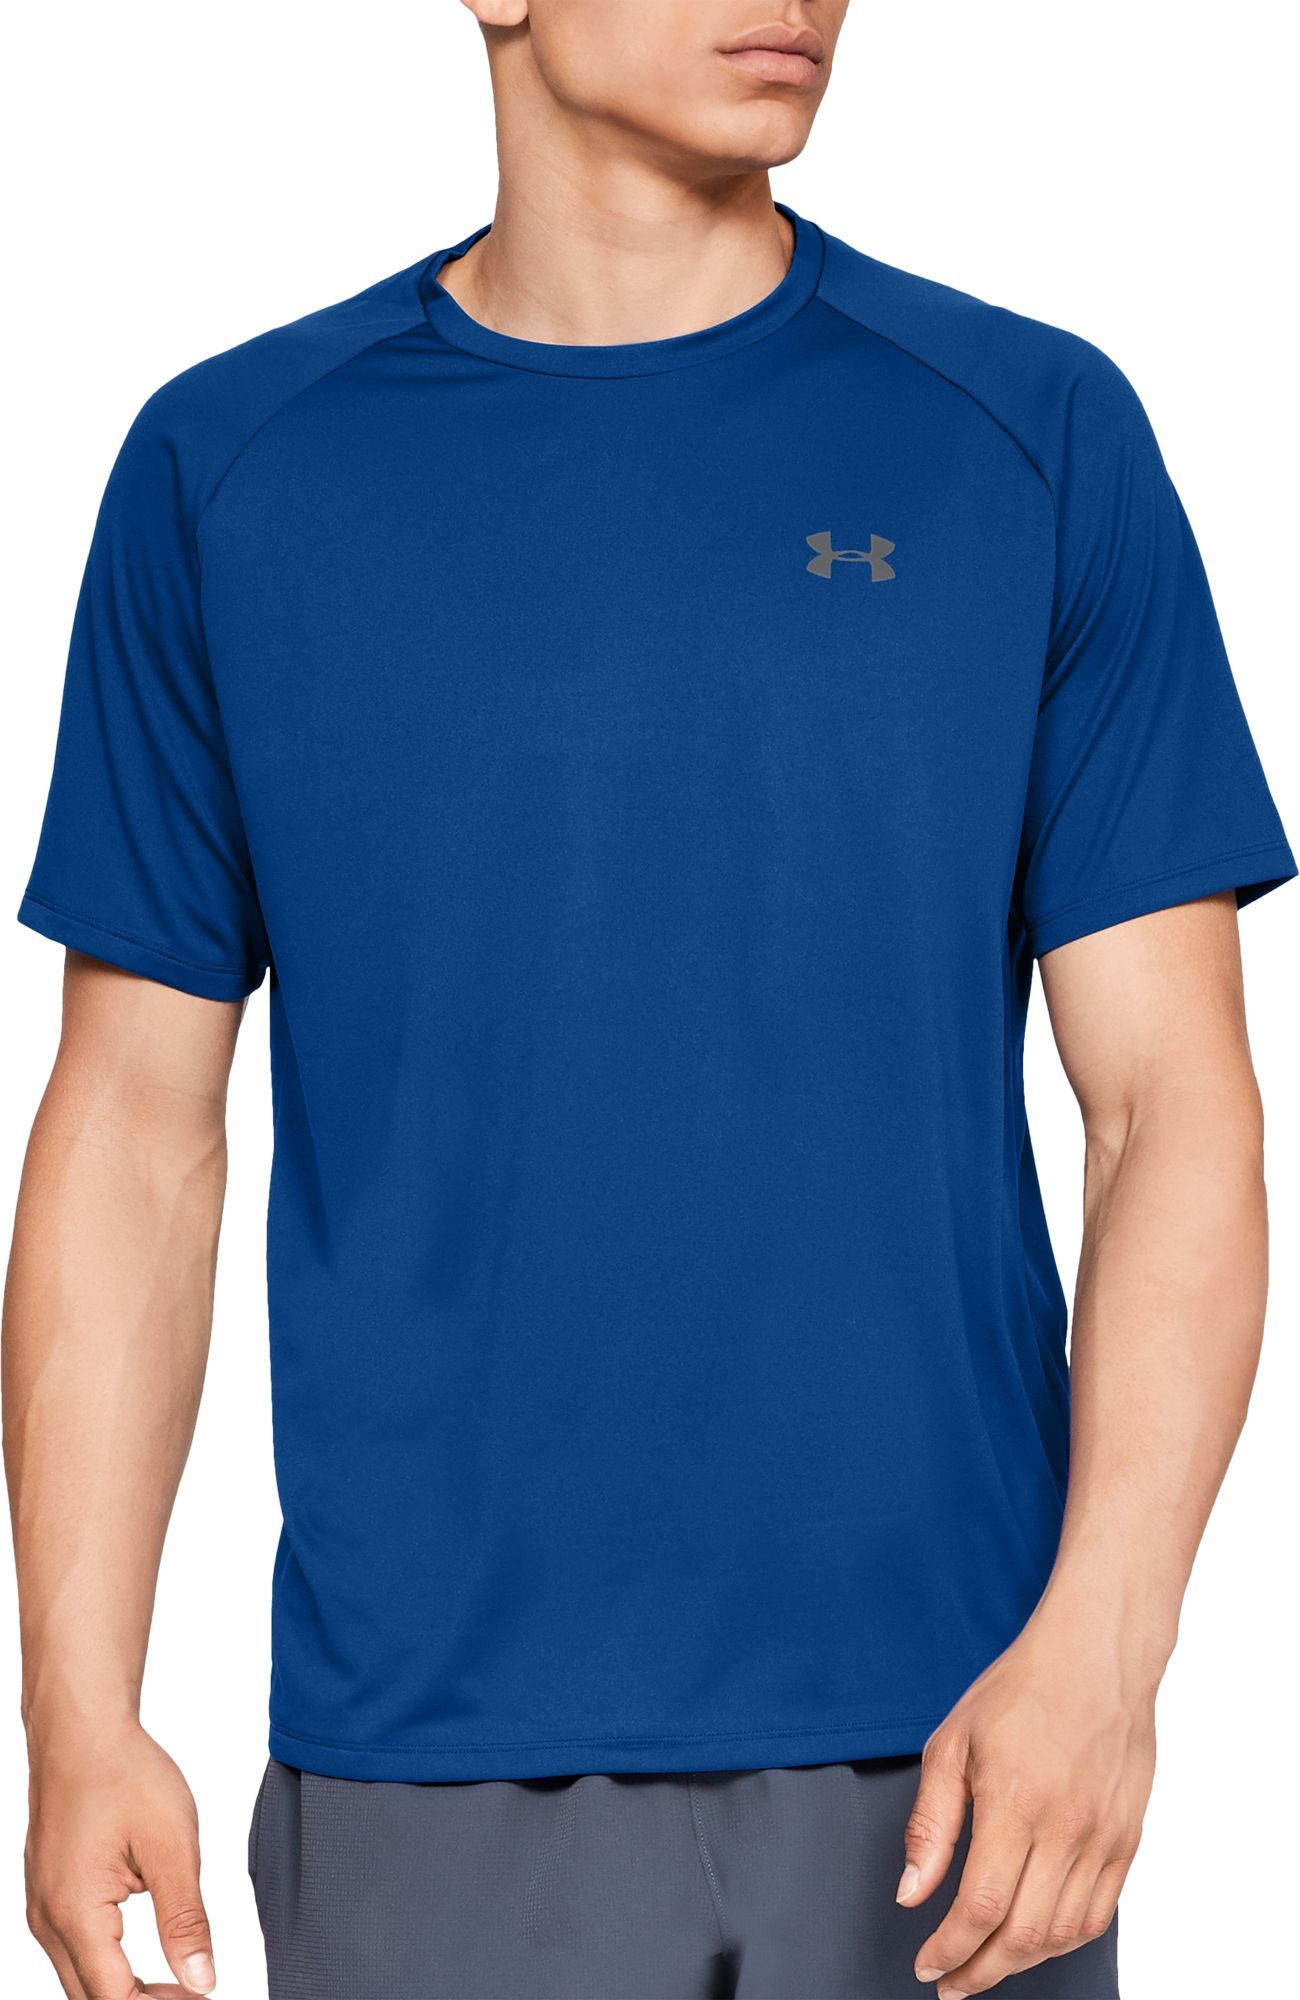 74fa8f0467eb58 Under Armour Men's Tech T-Shirt 2.0, Size: Small, Academy/Grey in ...